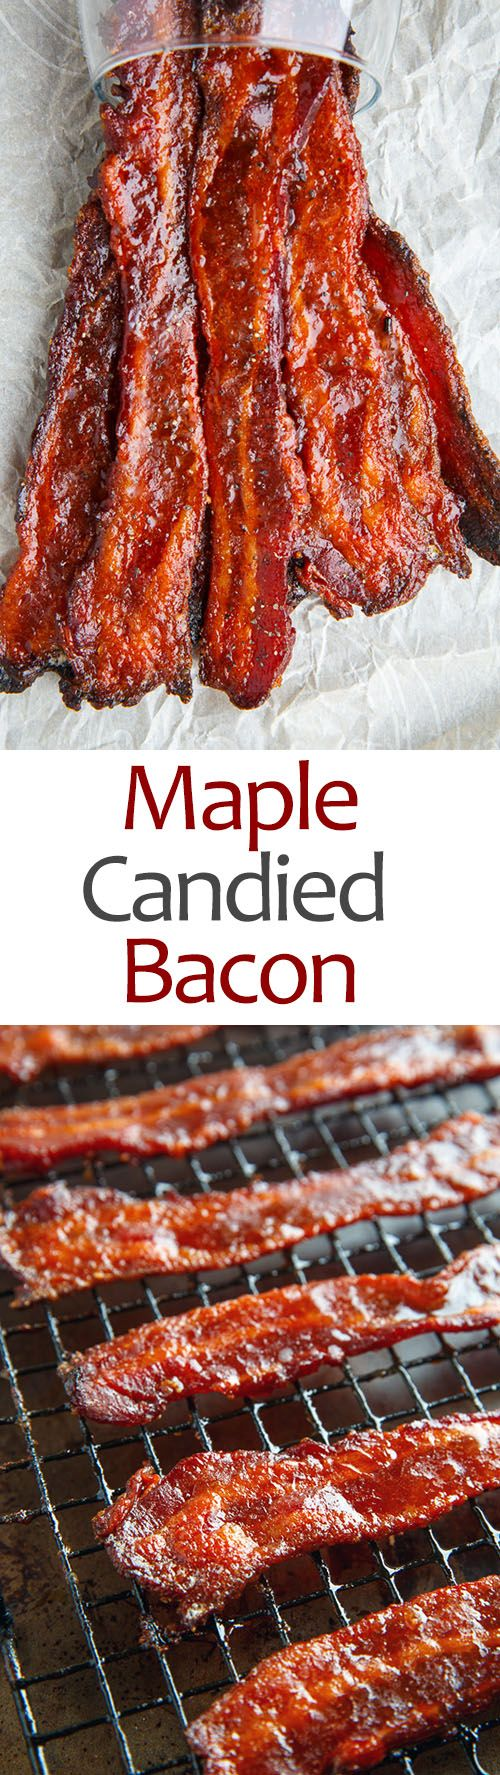 Maple Candied Bacon                                                                                                                                                                                 More